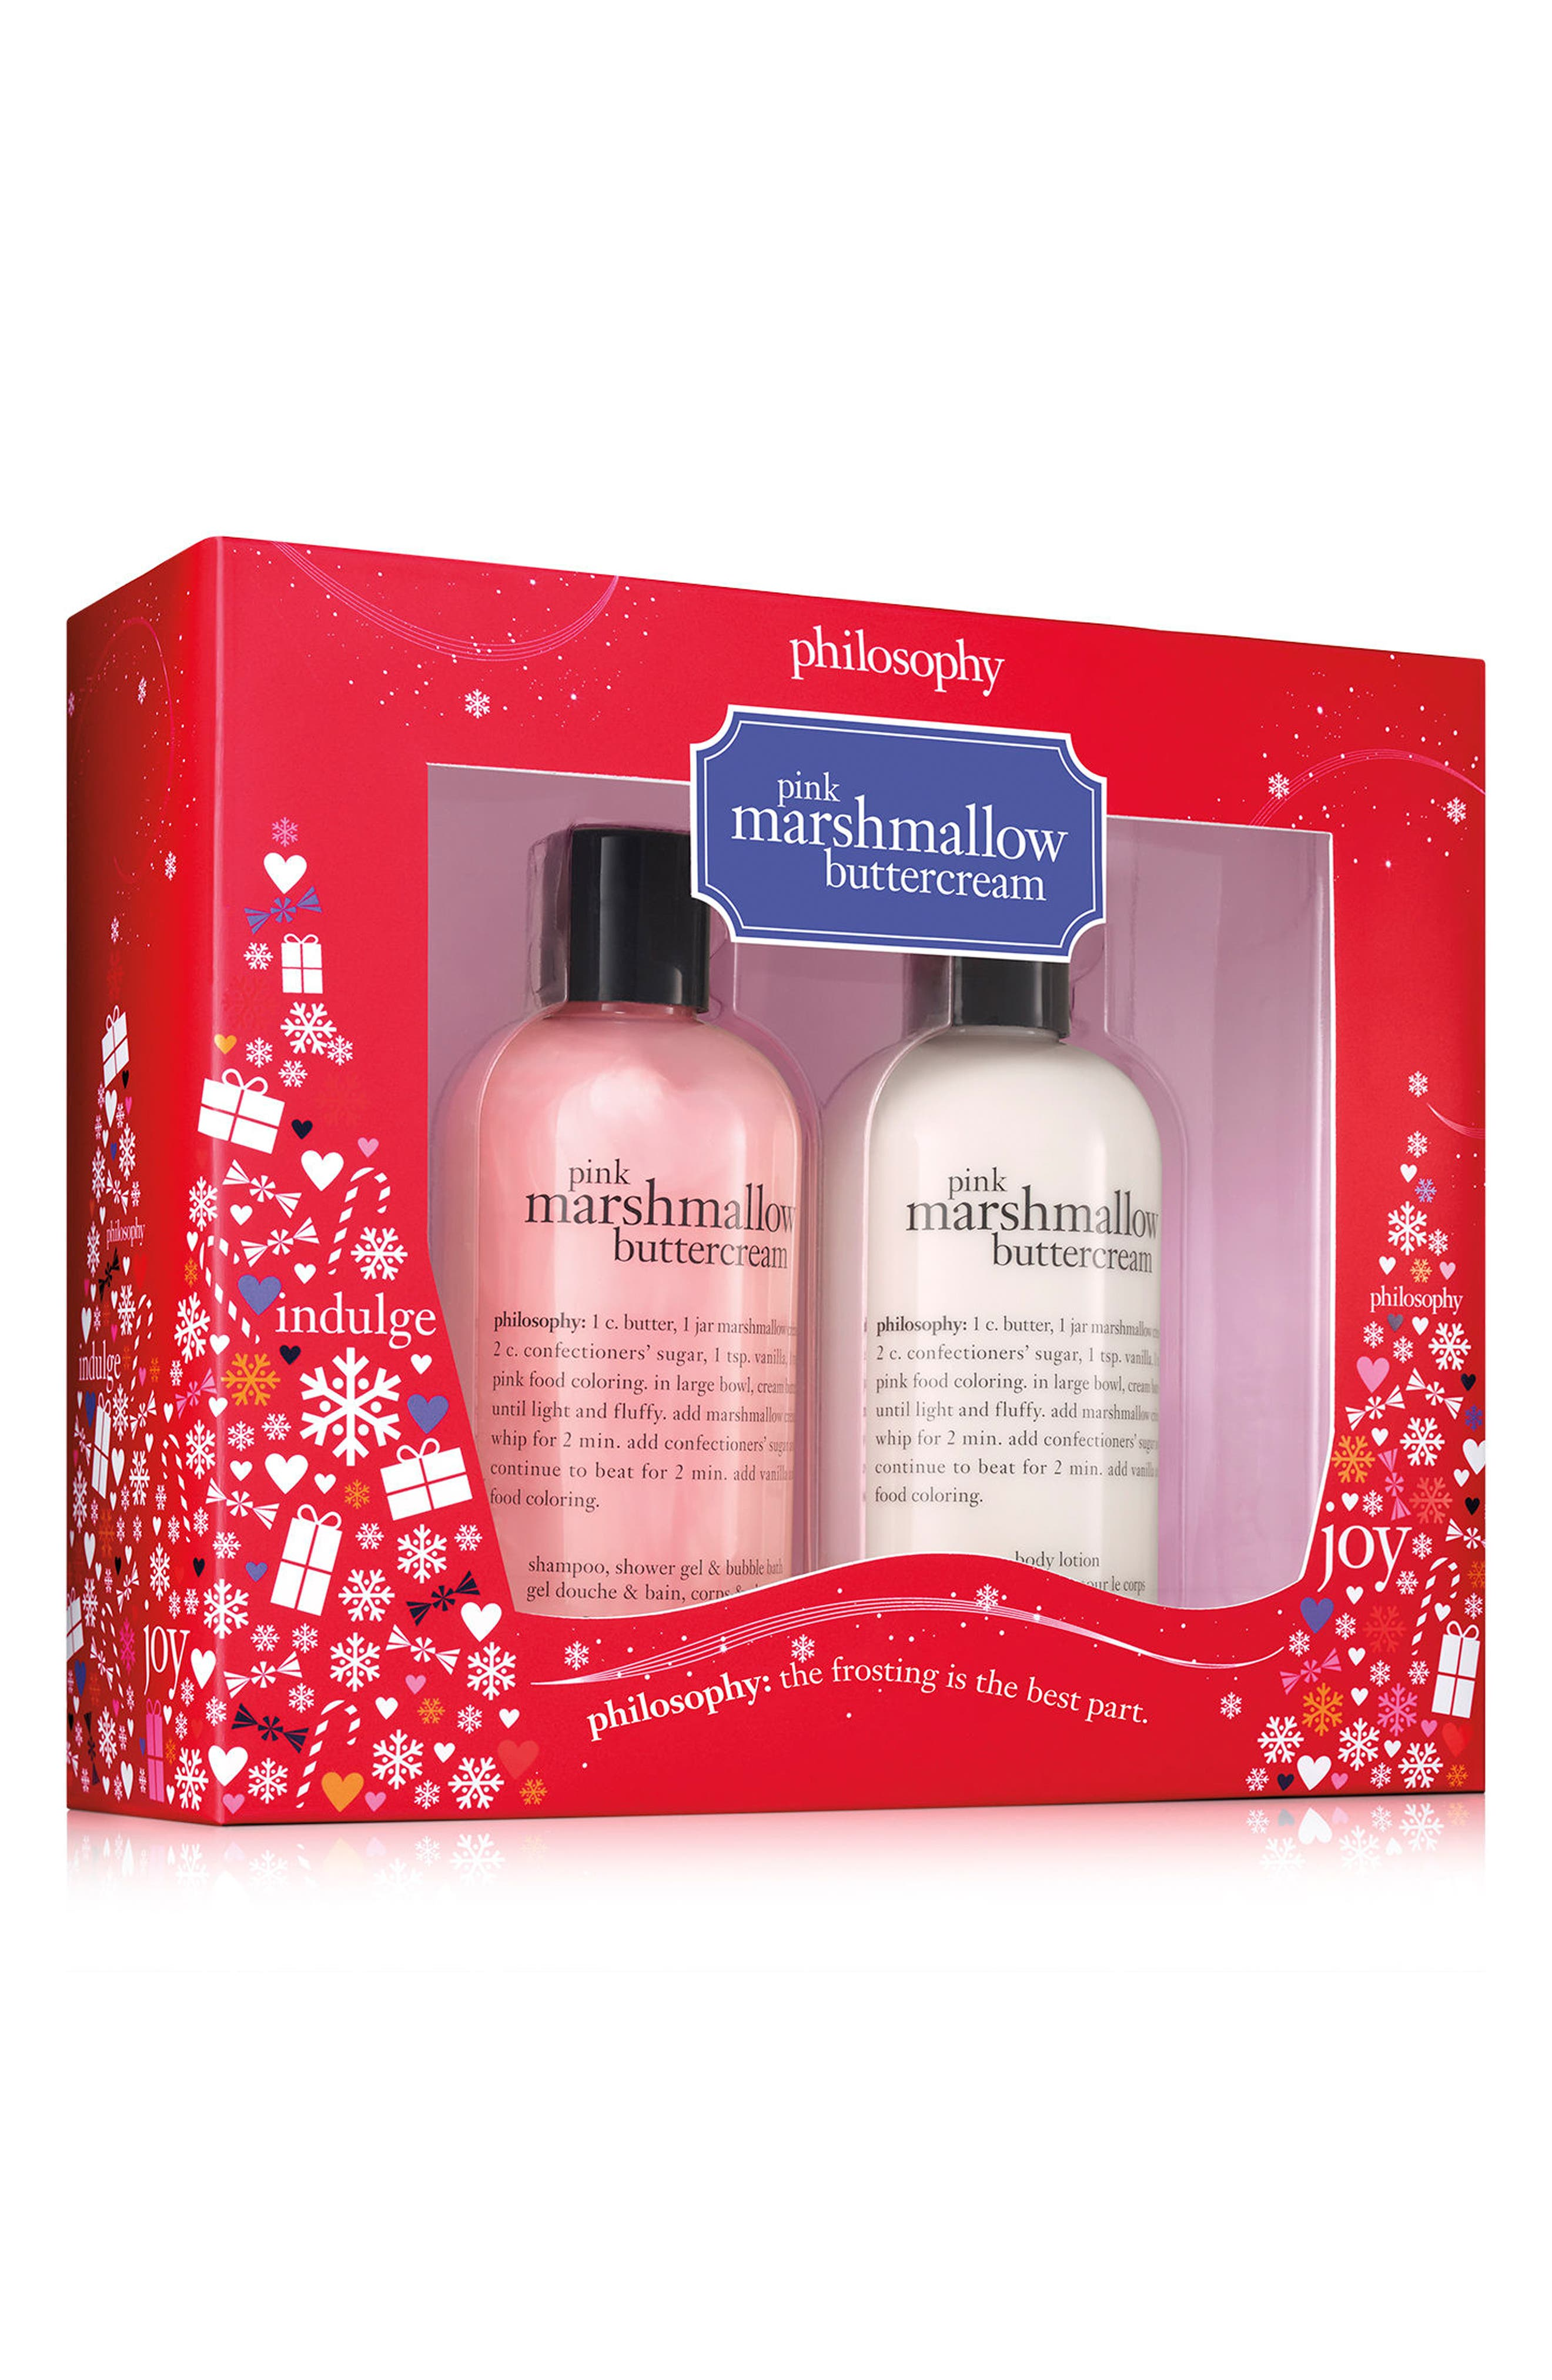 philosophy pink marshmallow buttercream duo (Nordstrom Exclusive)